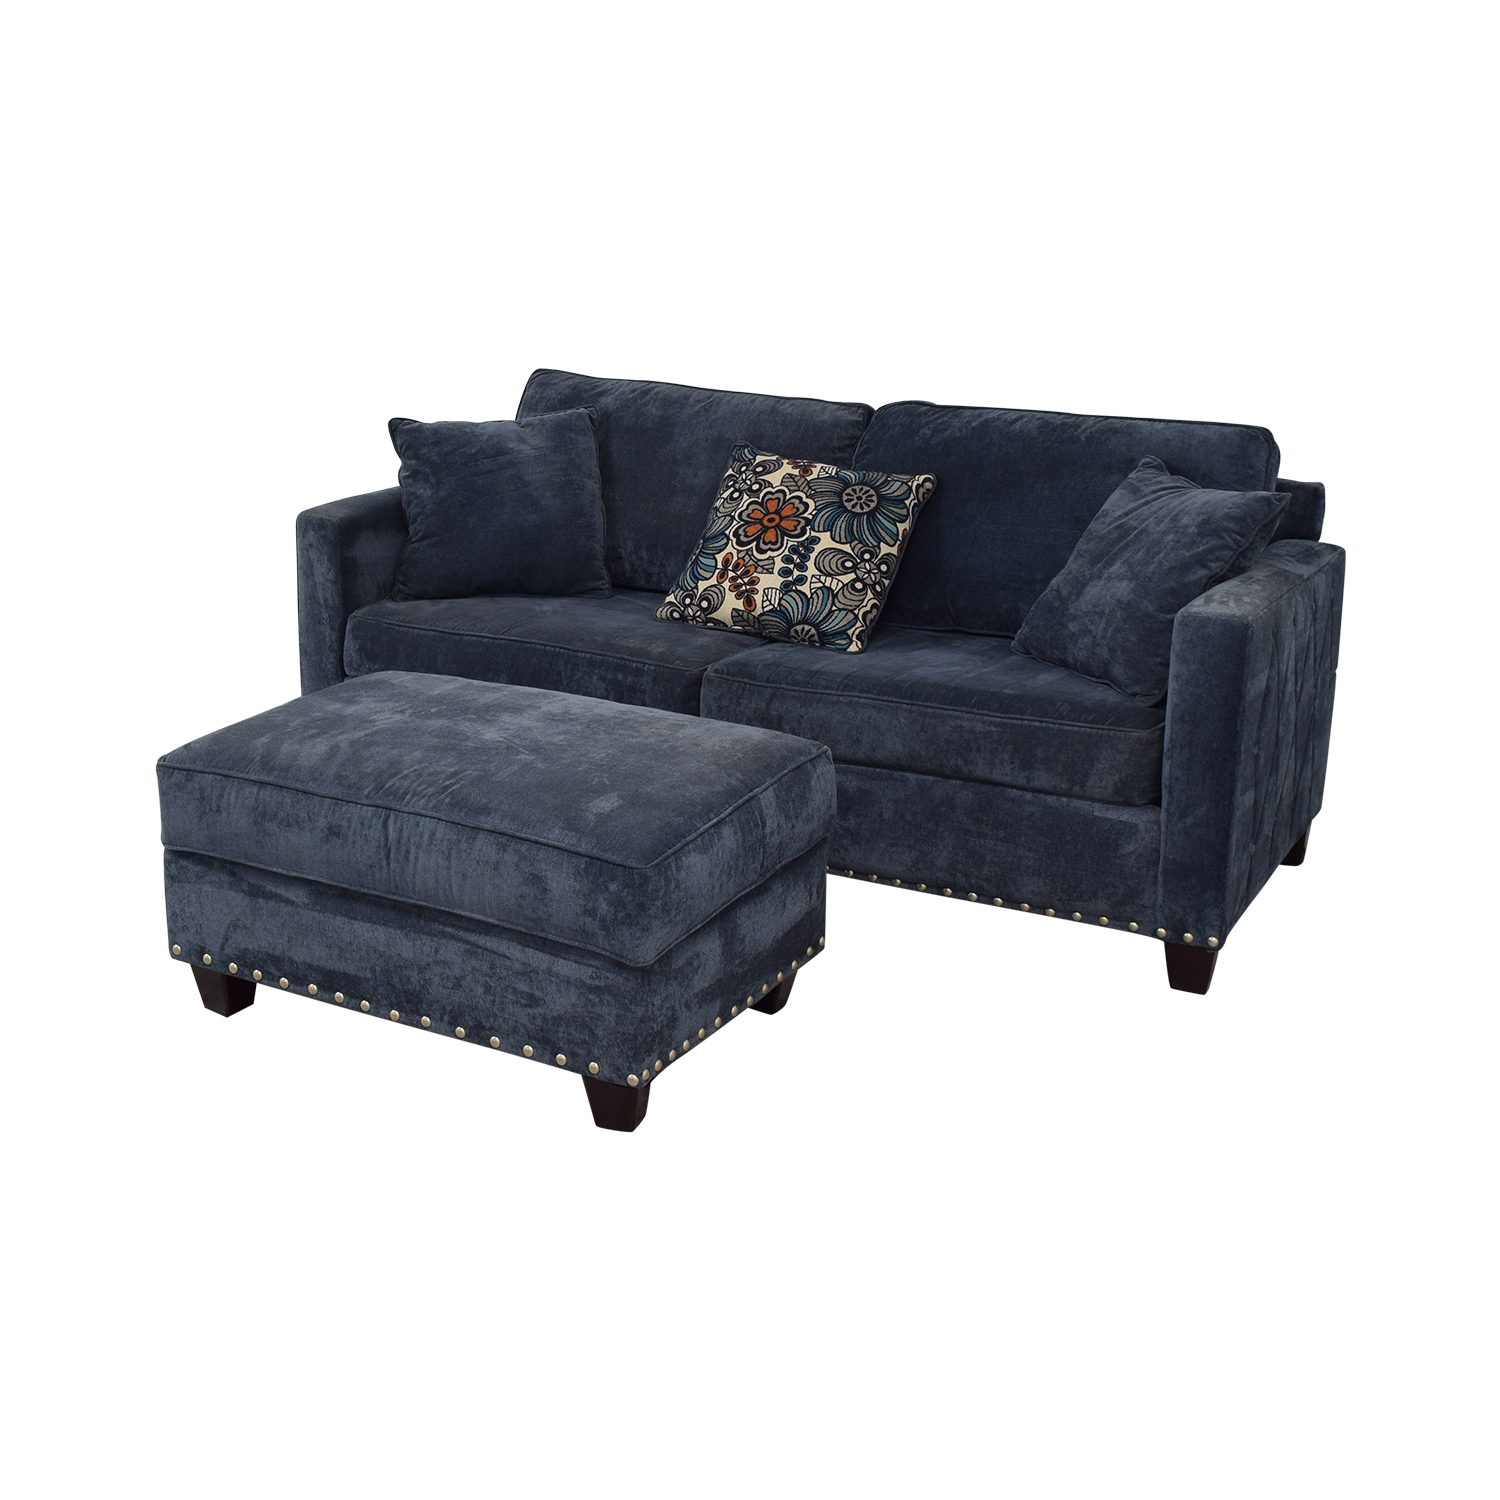 Bob's Discount Furniture Bob's Discount Furniture Melanie Blue Nailhead Sofa and Ottoman discount